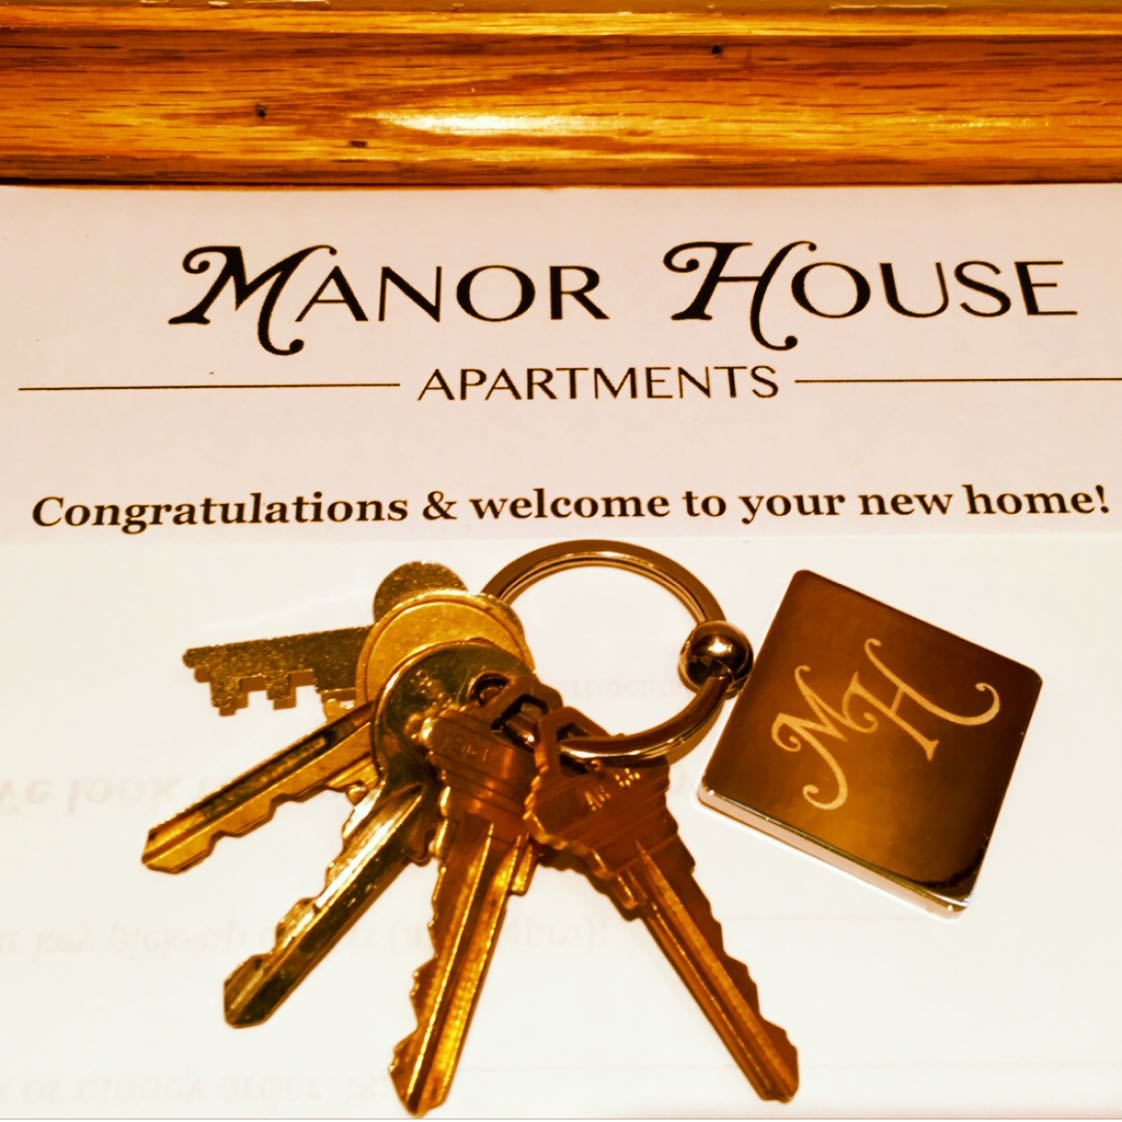 Manor House Apartments image 19